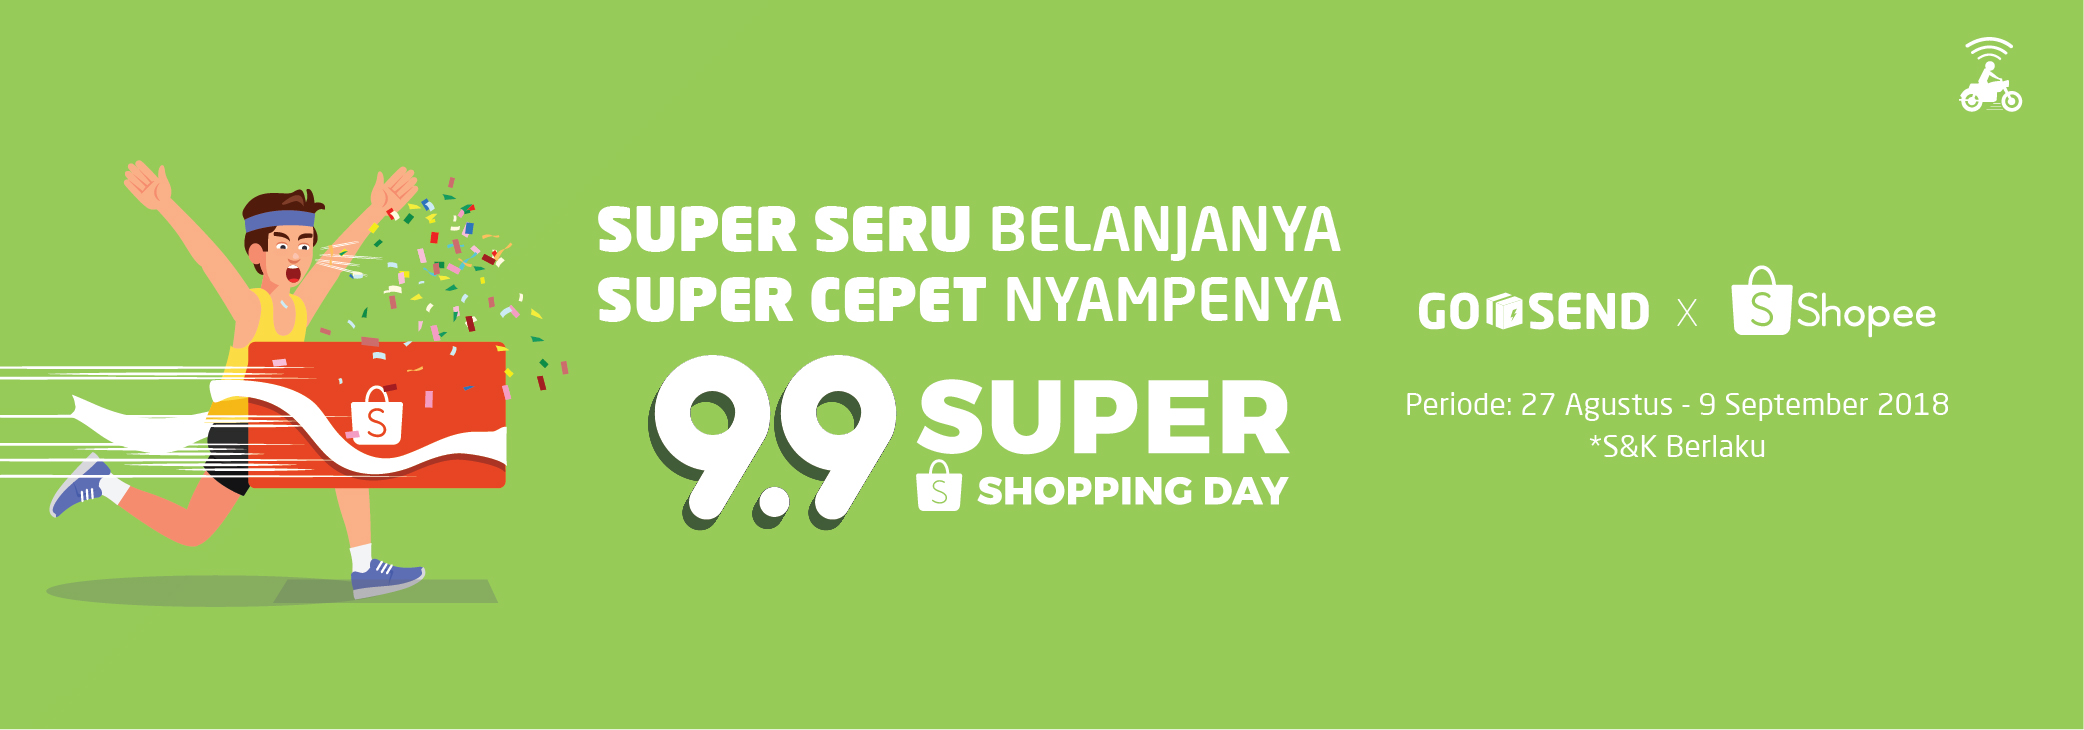 Super Shopping Day Shopee: Diskon GO-SEND Rp15.000